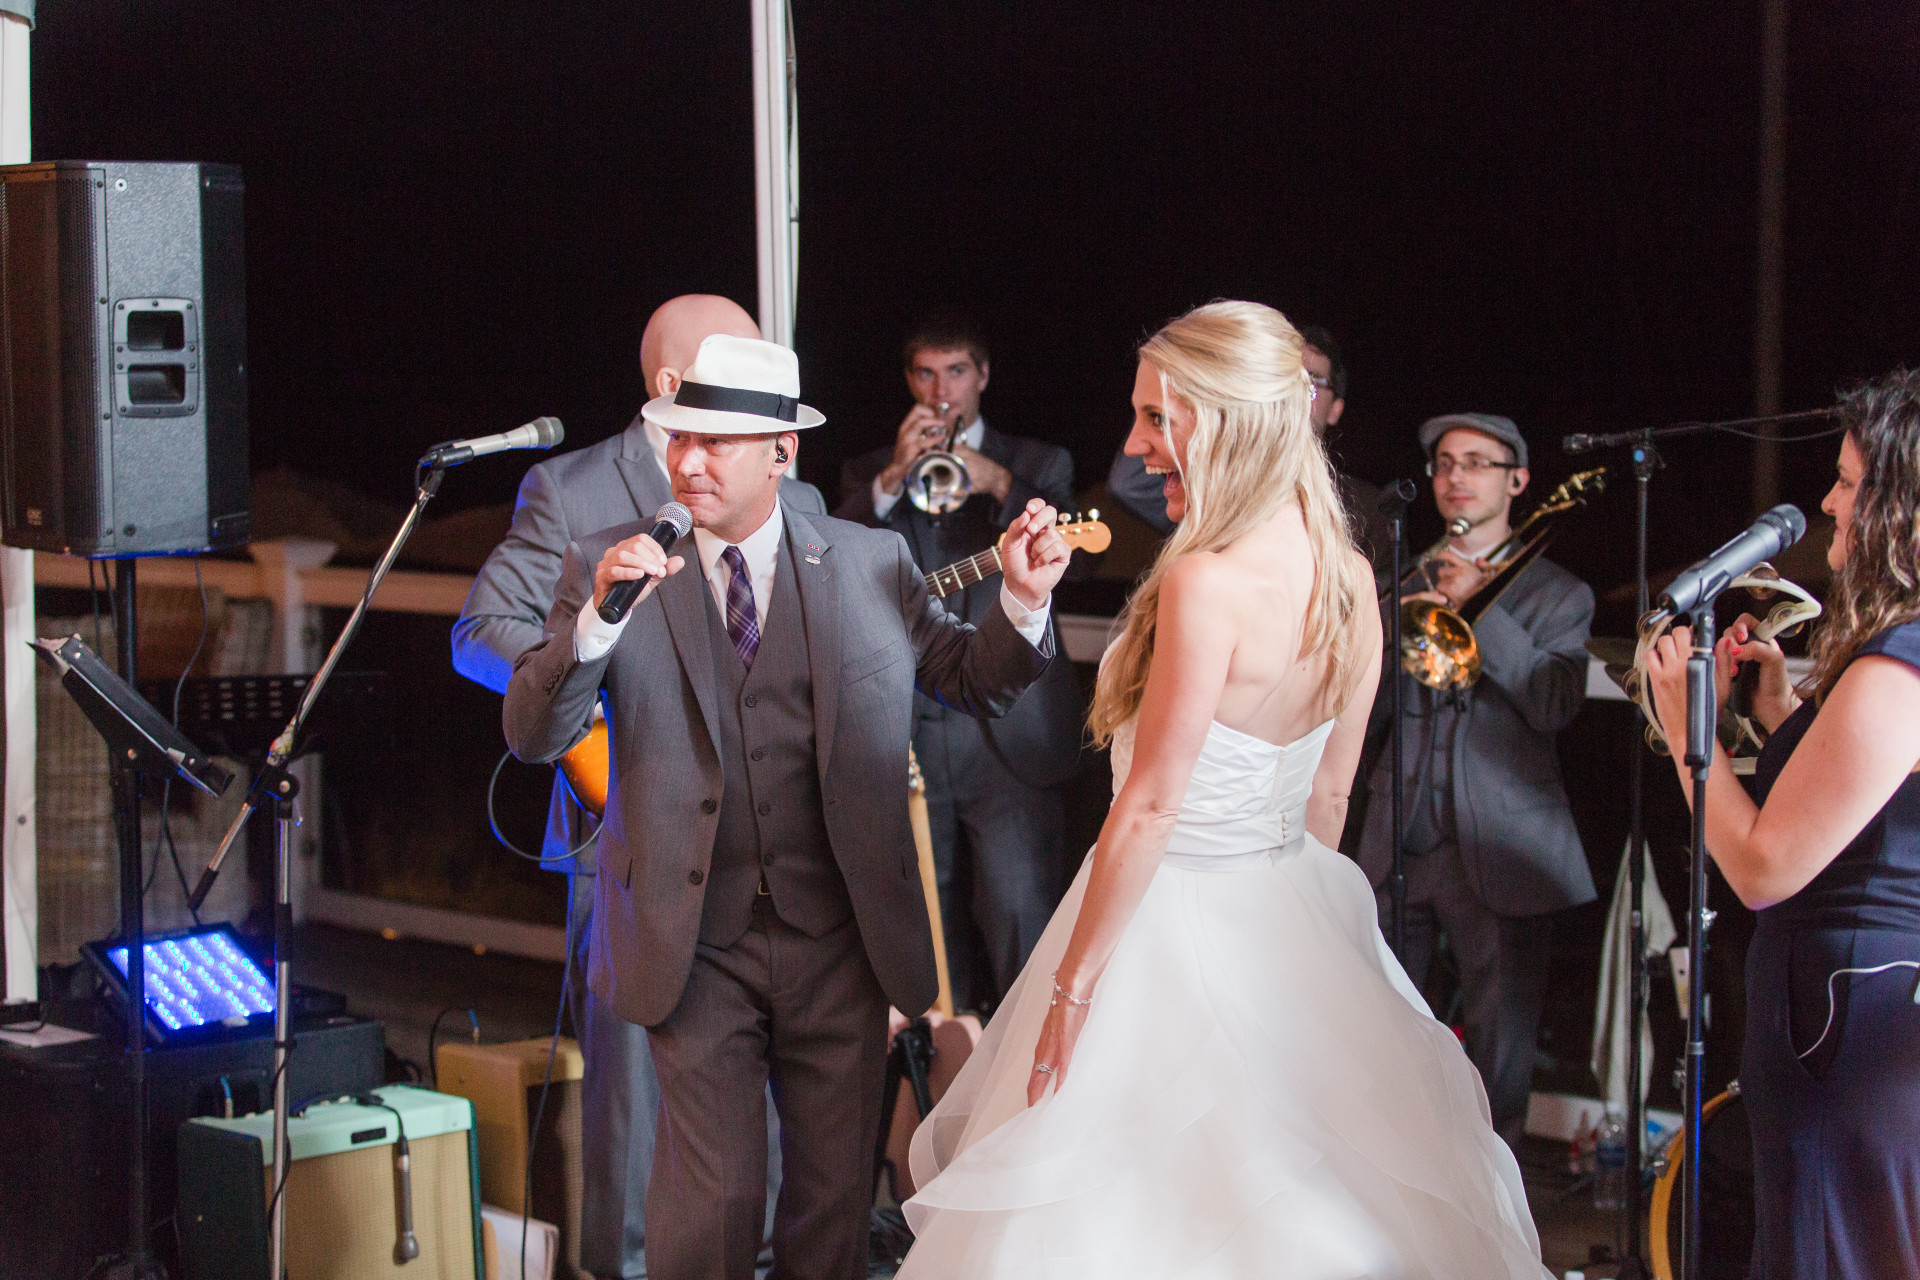 jt-cbi-wedding-cape-cod-groove-alliance-shoreshotz-0105